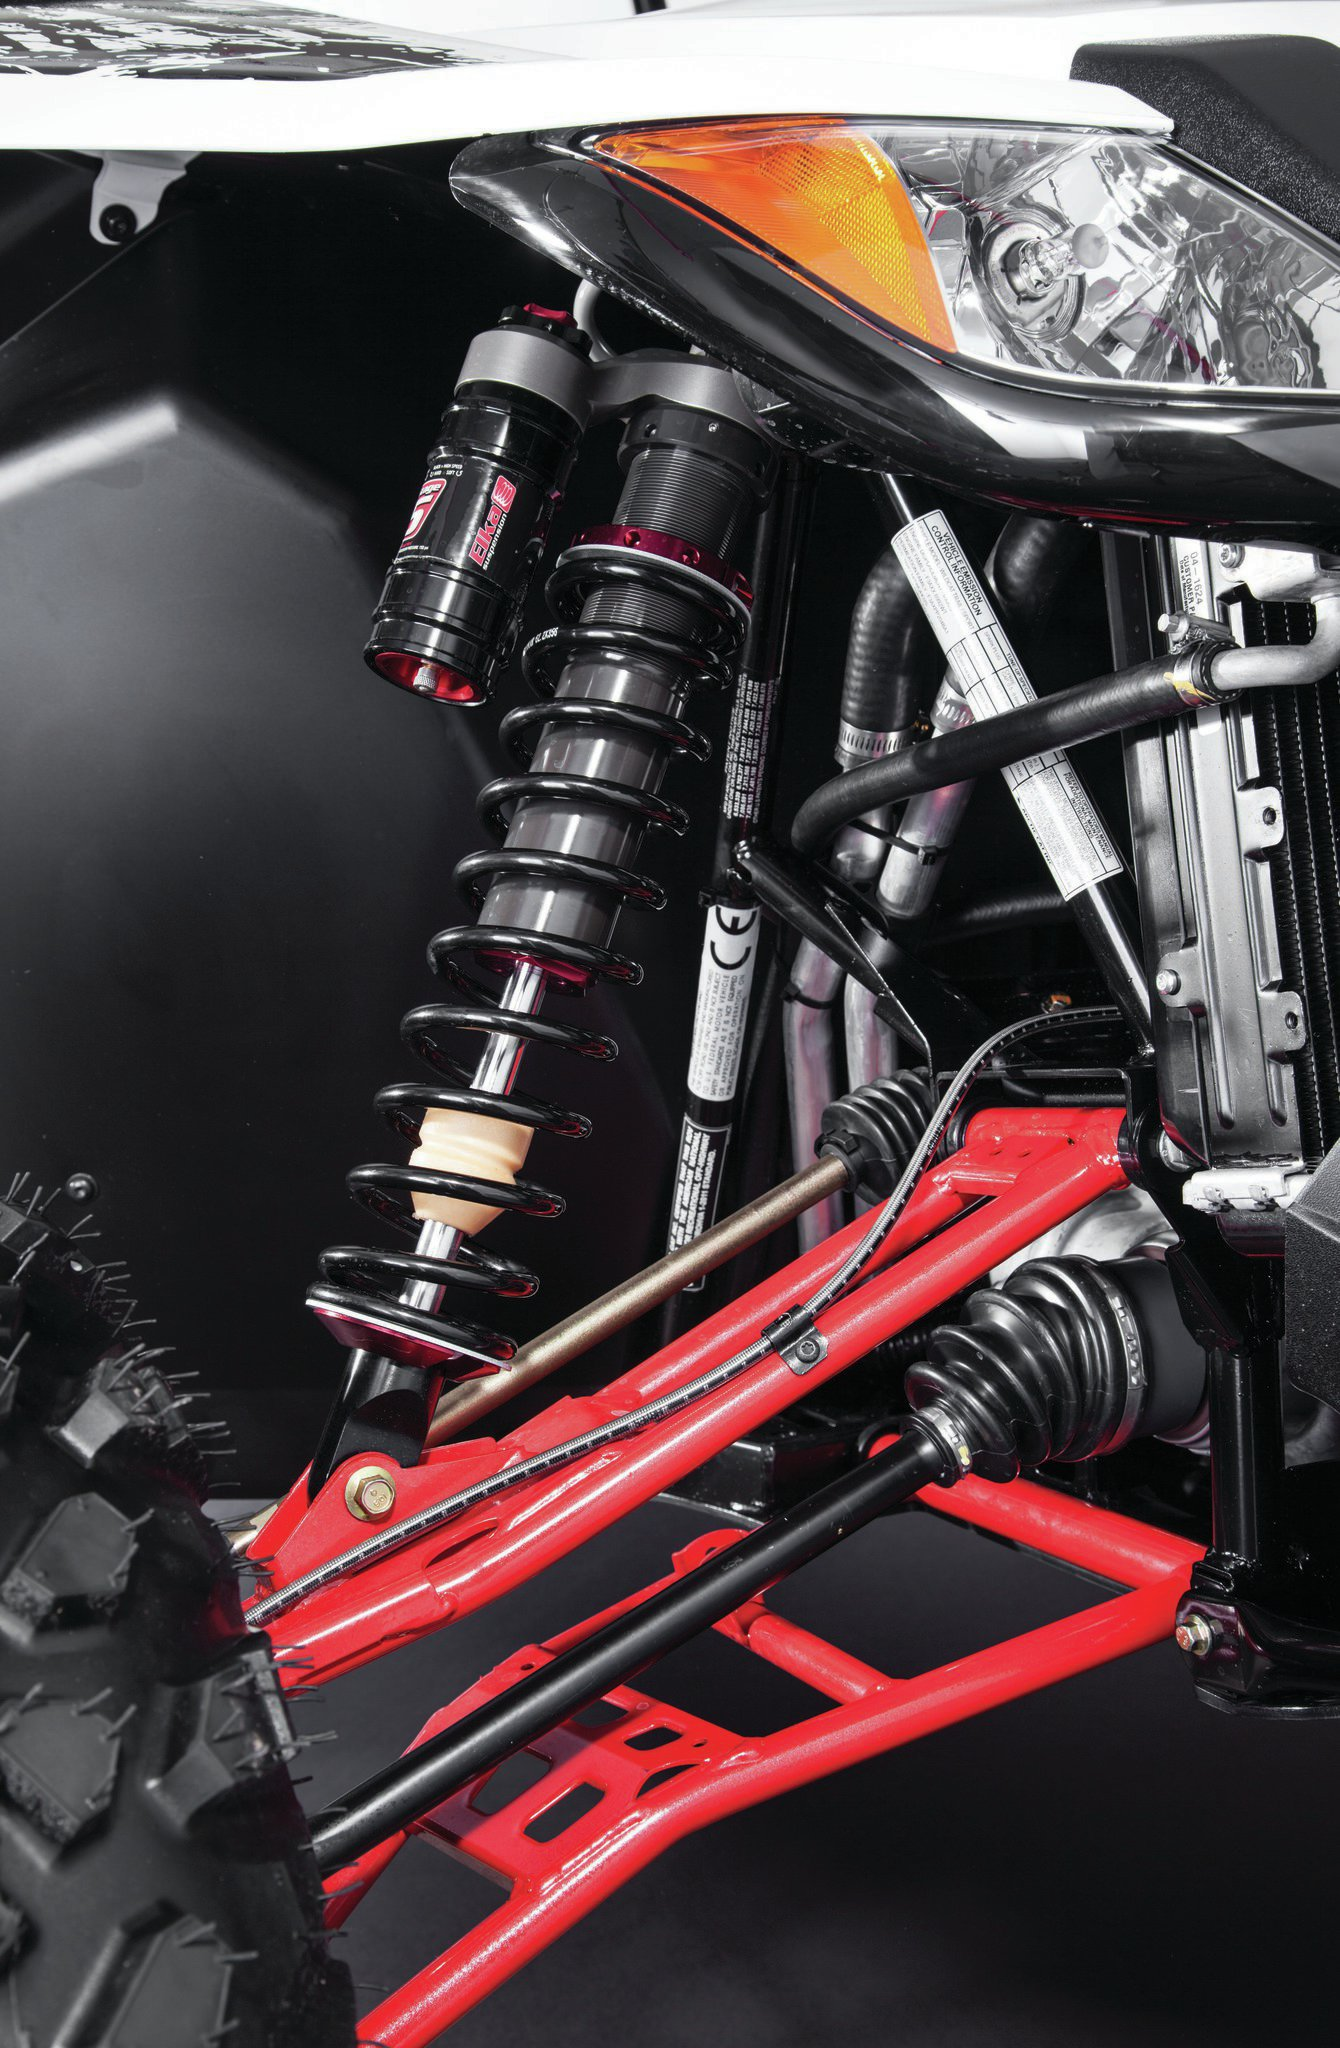 The Arctic Cat features a double A-arm front/rear suspension with rear sway bar featuring 12.2/12.6 inches of travel, with 13 inches of ground clearance (shown with JRI shocks).